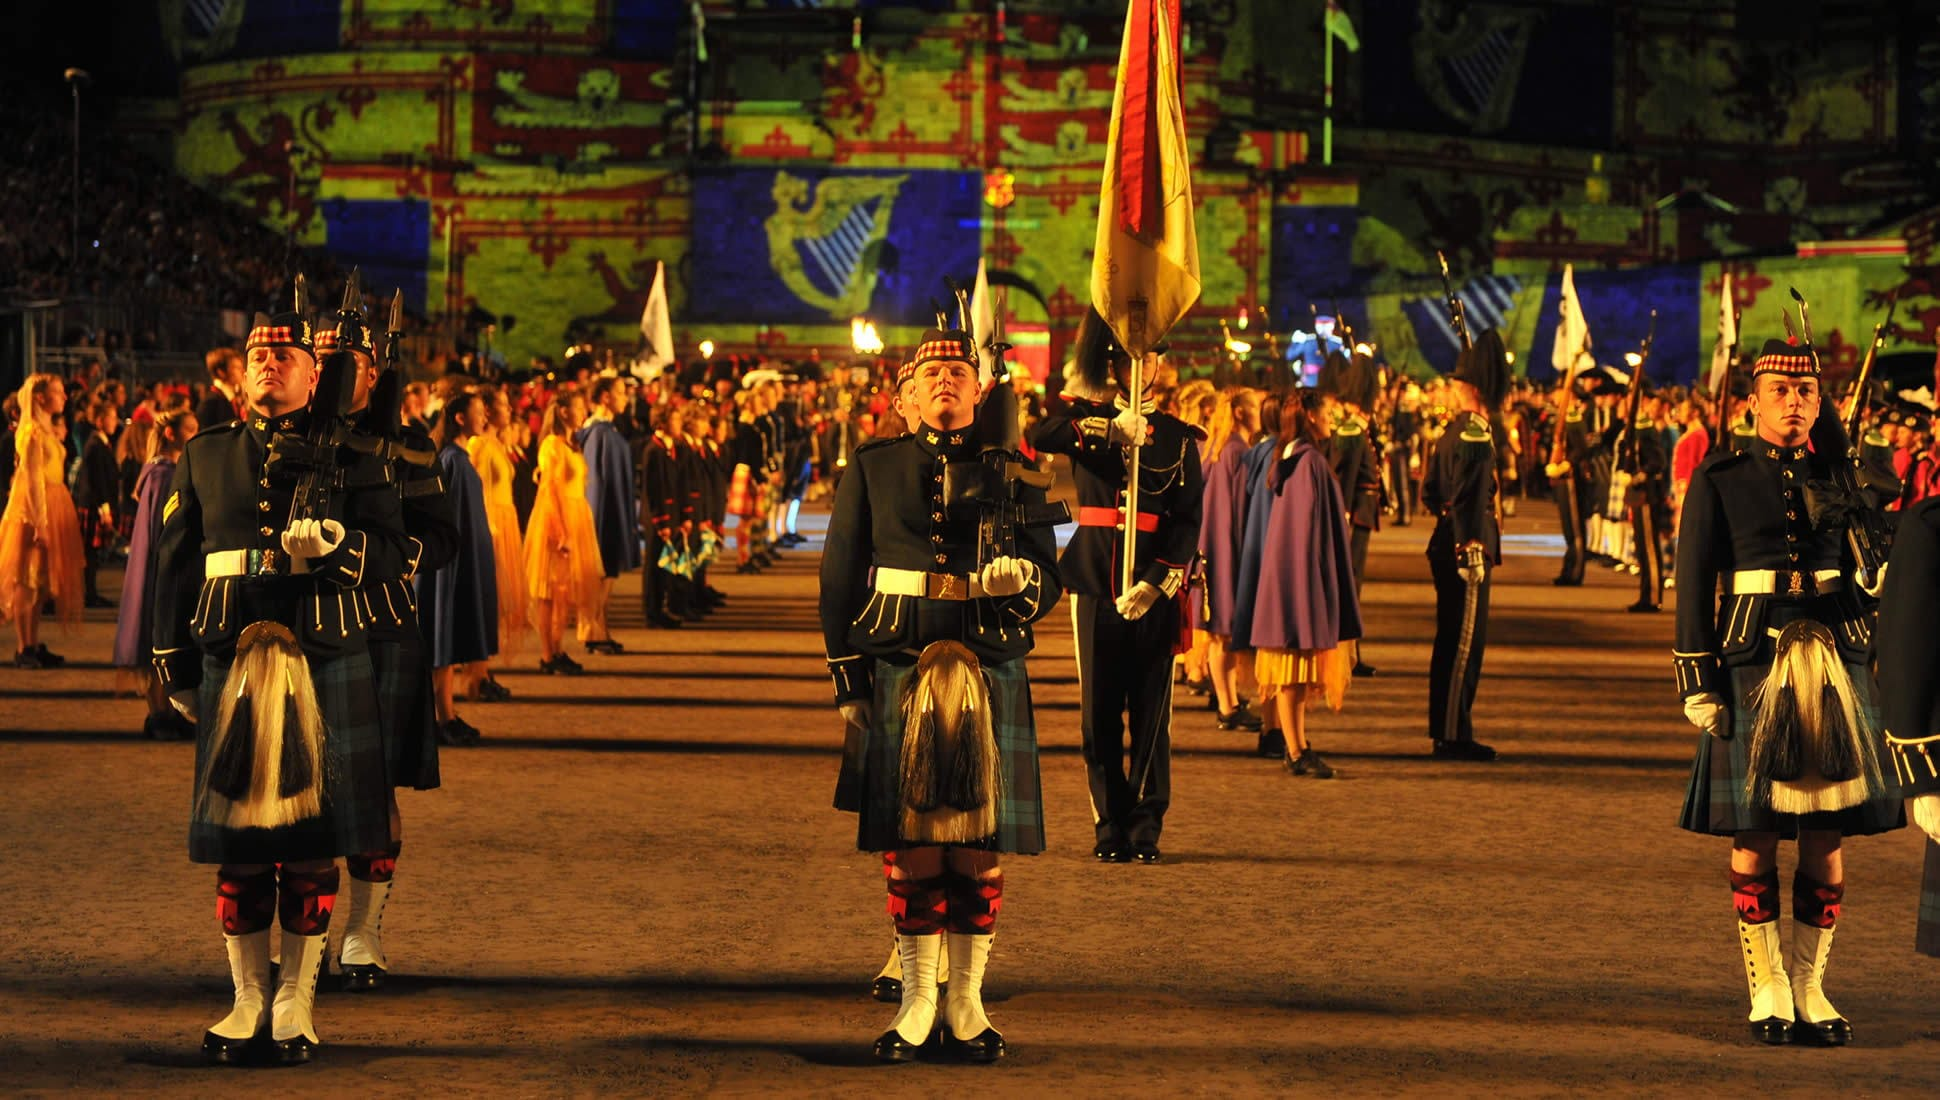 Schottland schumann reisen for Royal military tattoo